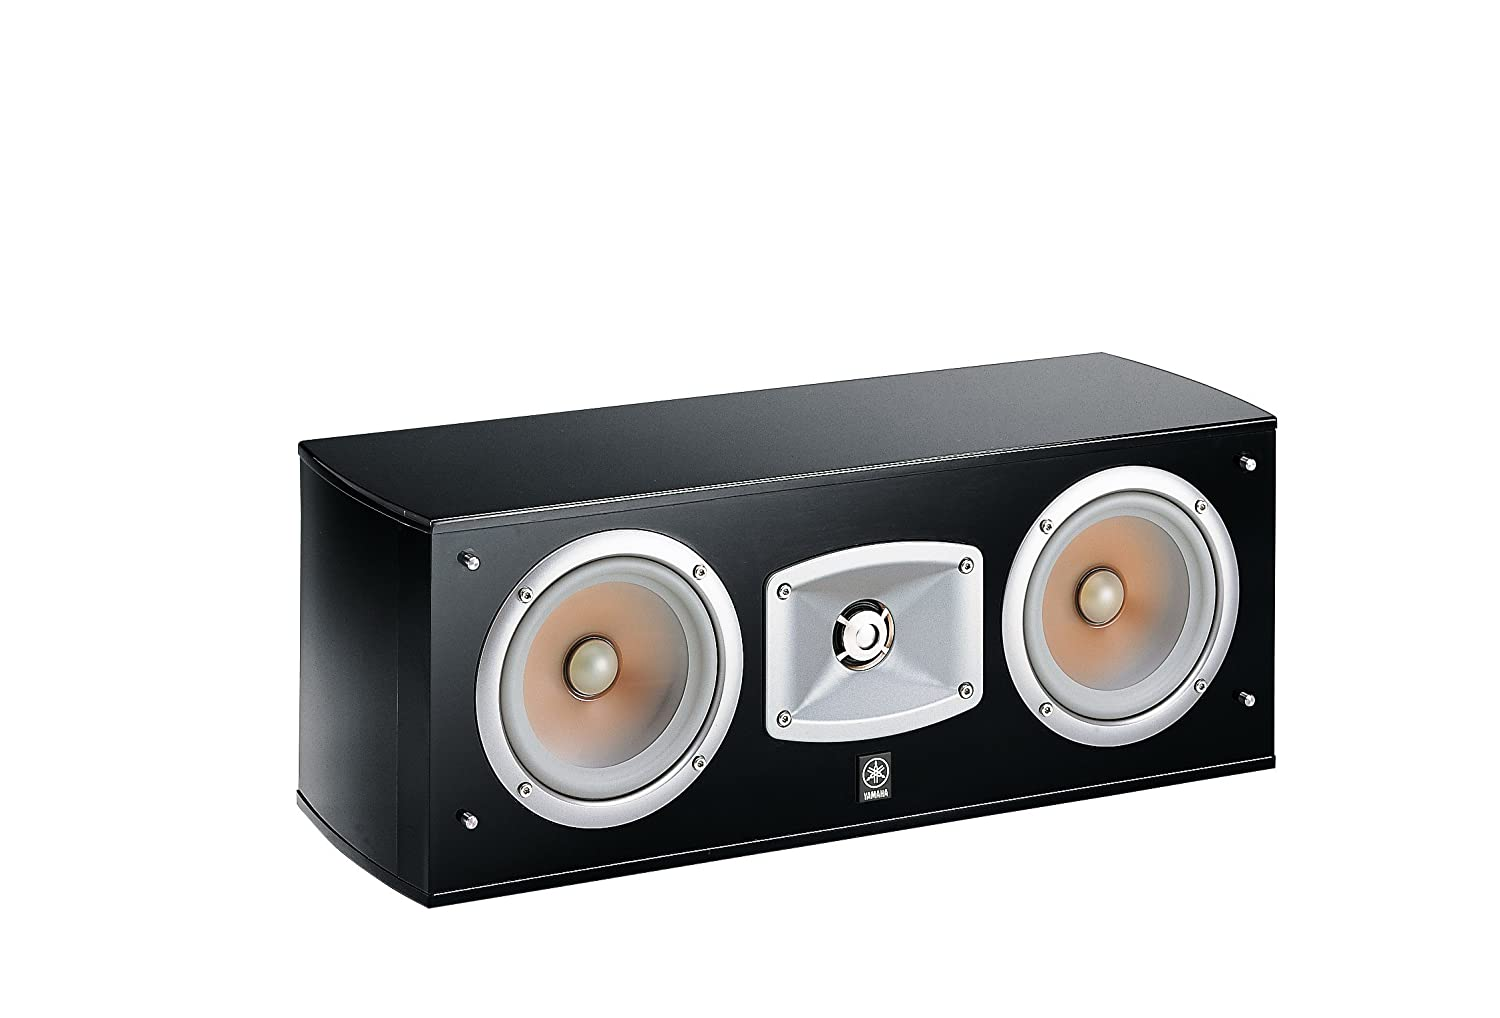 Yamaha NS C 444 Center Speaker 2-Way Centre Speaker Acoustic Suspension Double Woofer Black Piano Lacquer Yamaha Music EU - Italy branch NSC444 P sellerccB155830